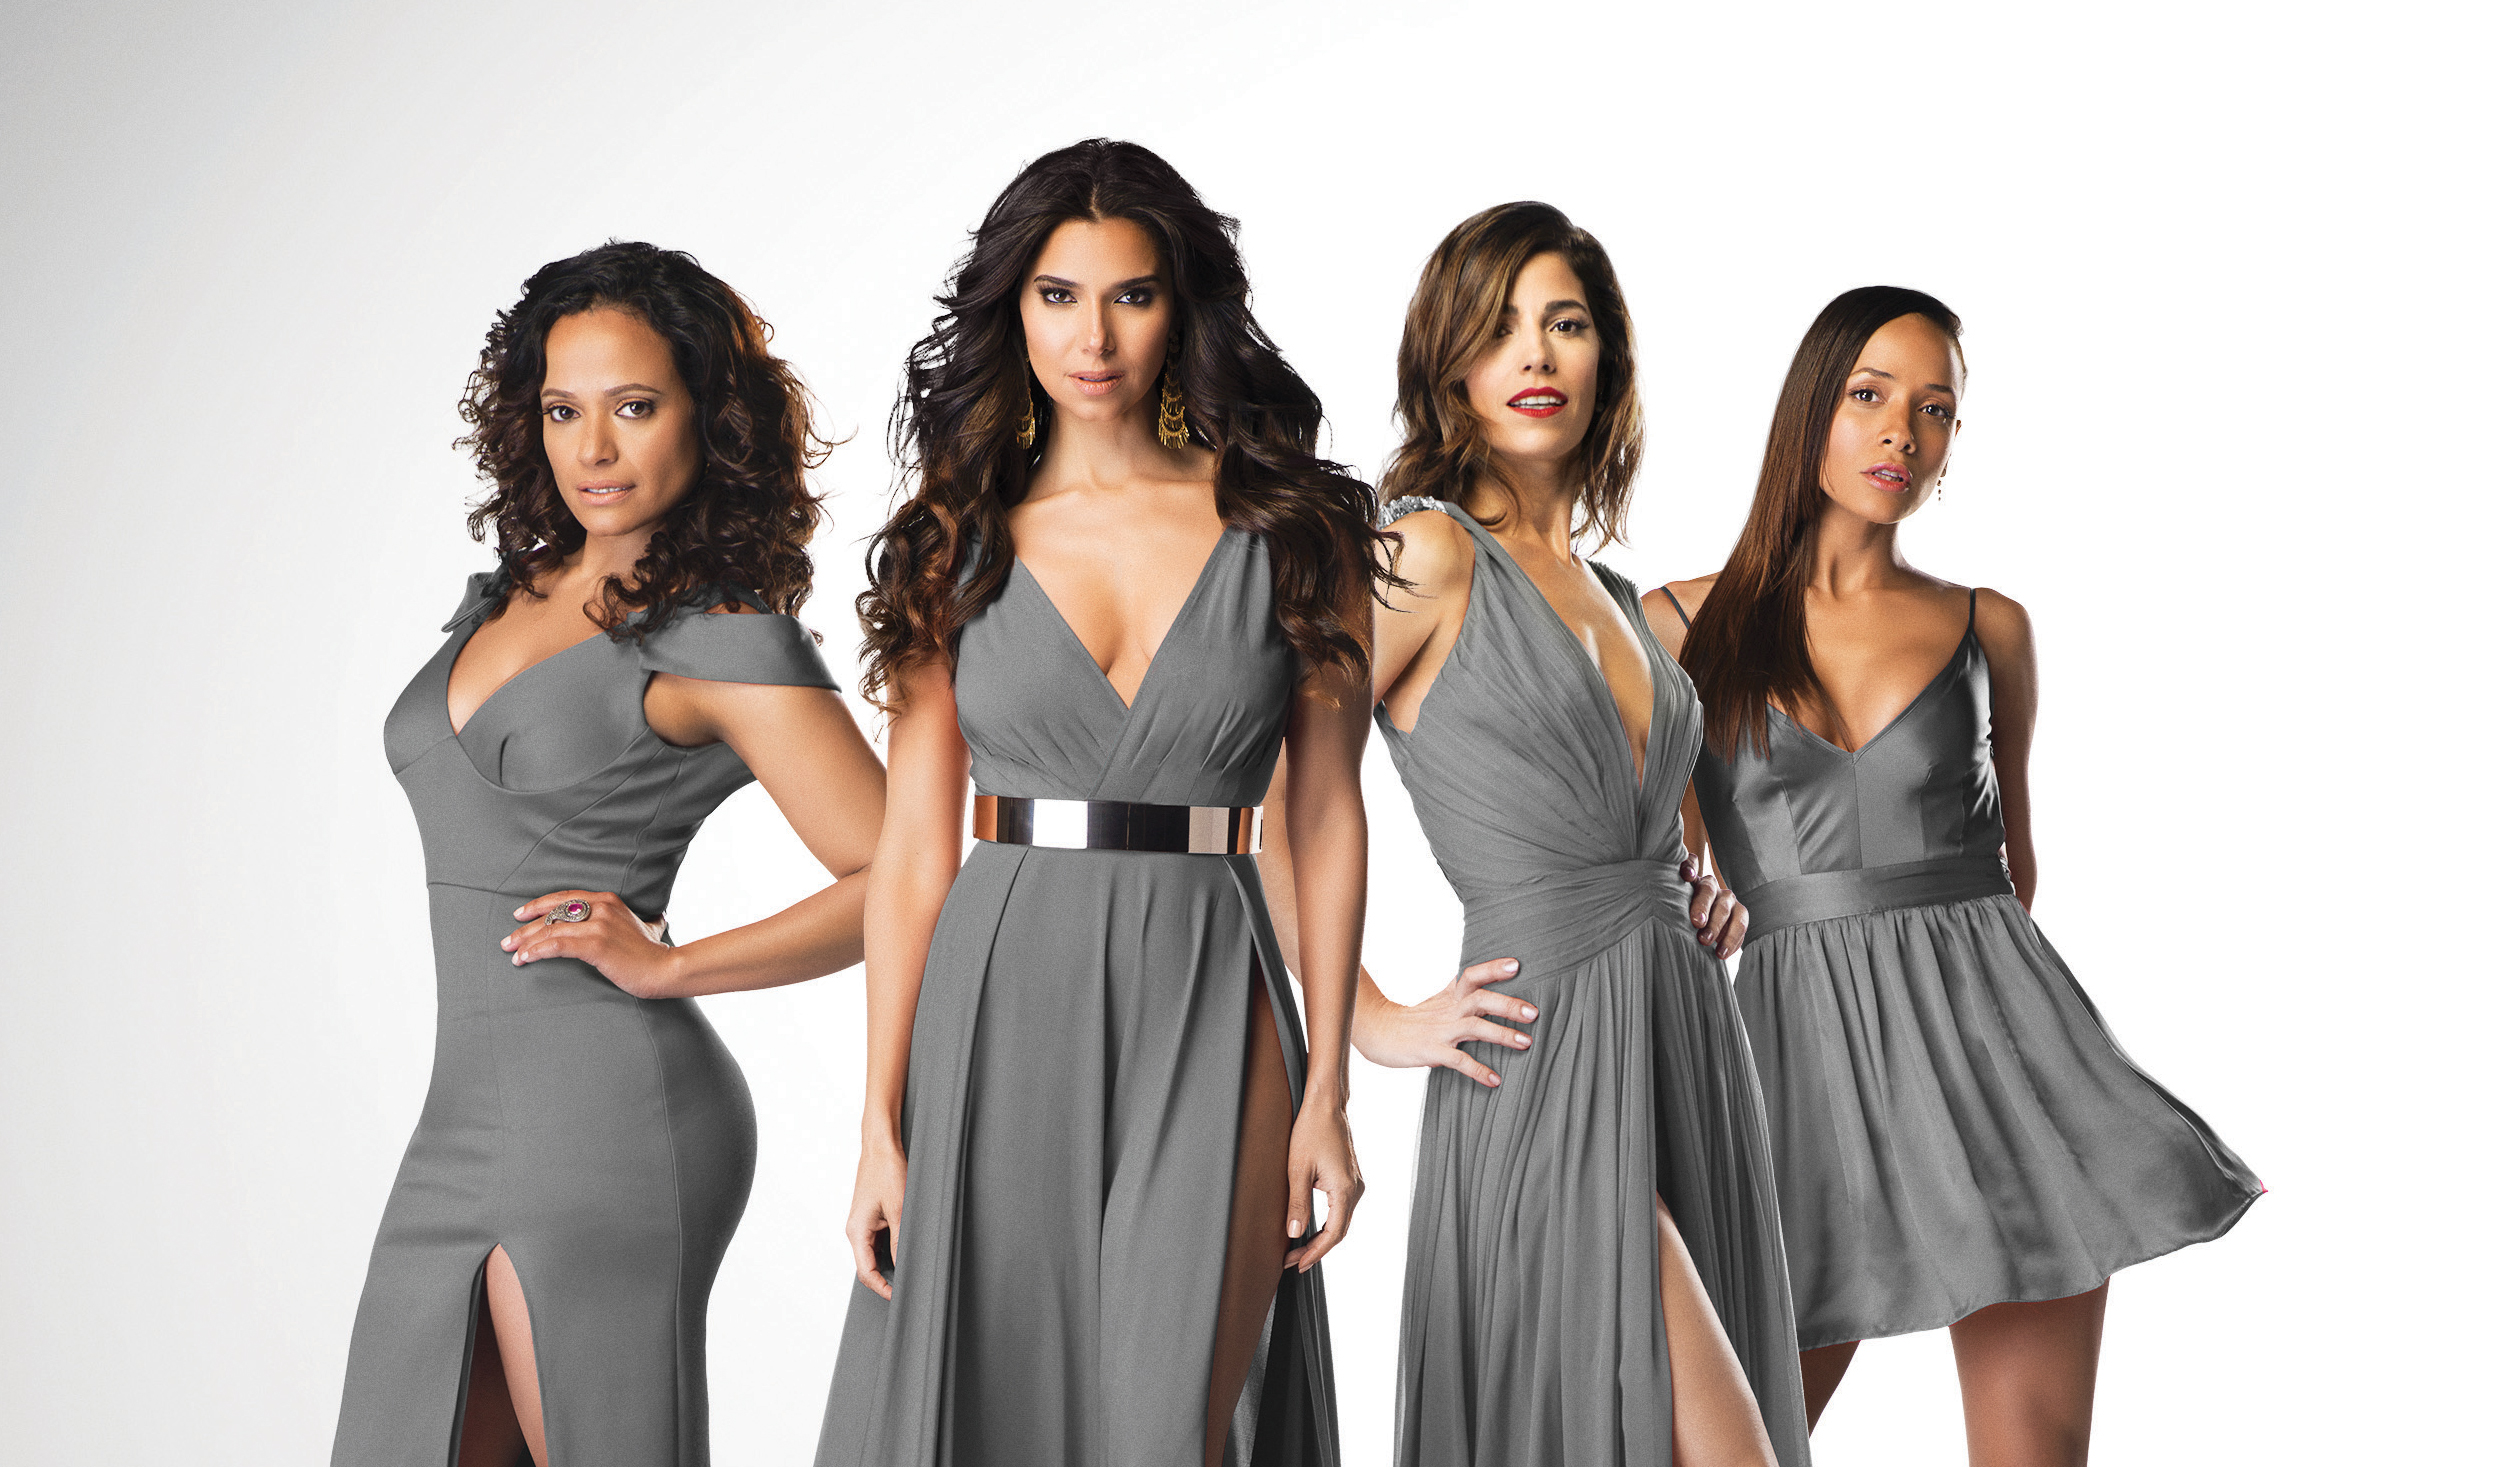 Devious maids episode guide